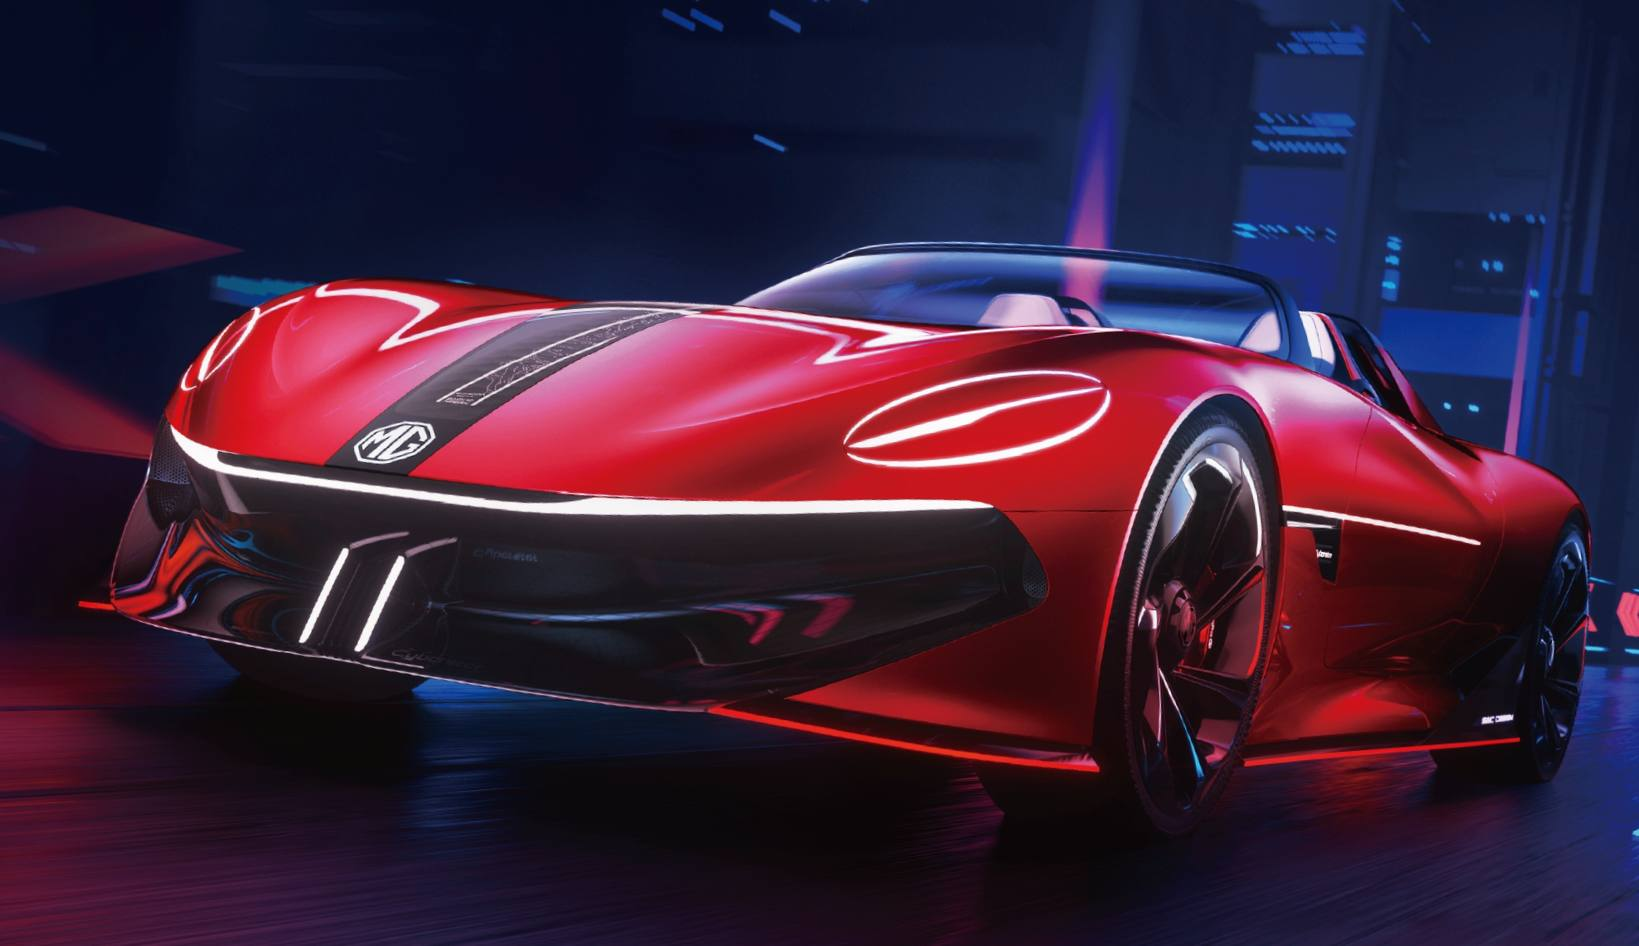 MG Cyberster concept previews 5G-ready electric sportscar with 800-kilometre range- Technology News, Gadgetclock